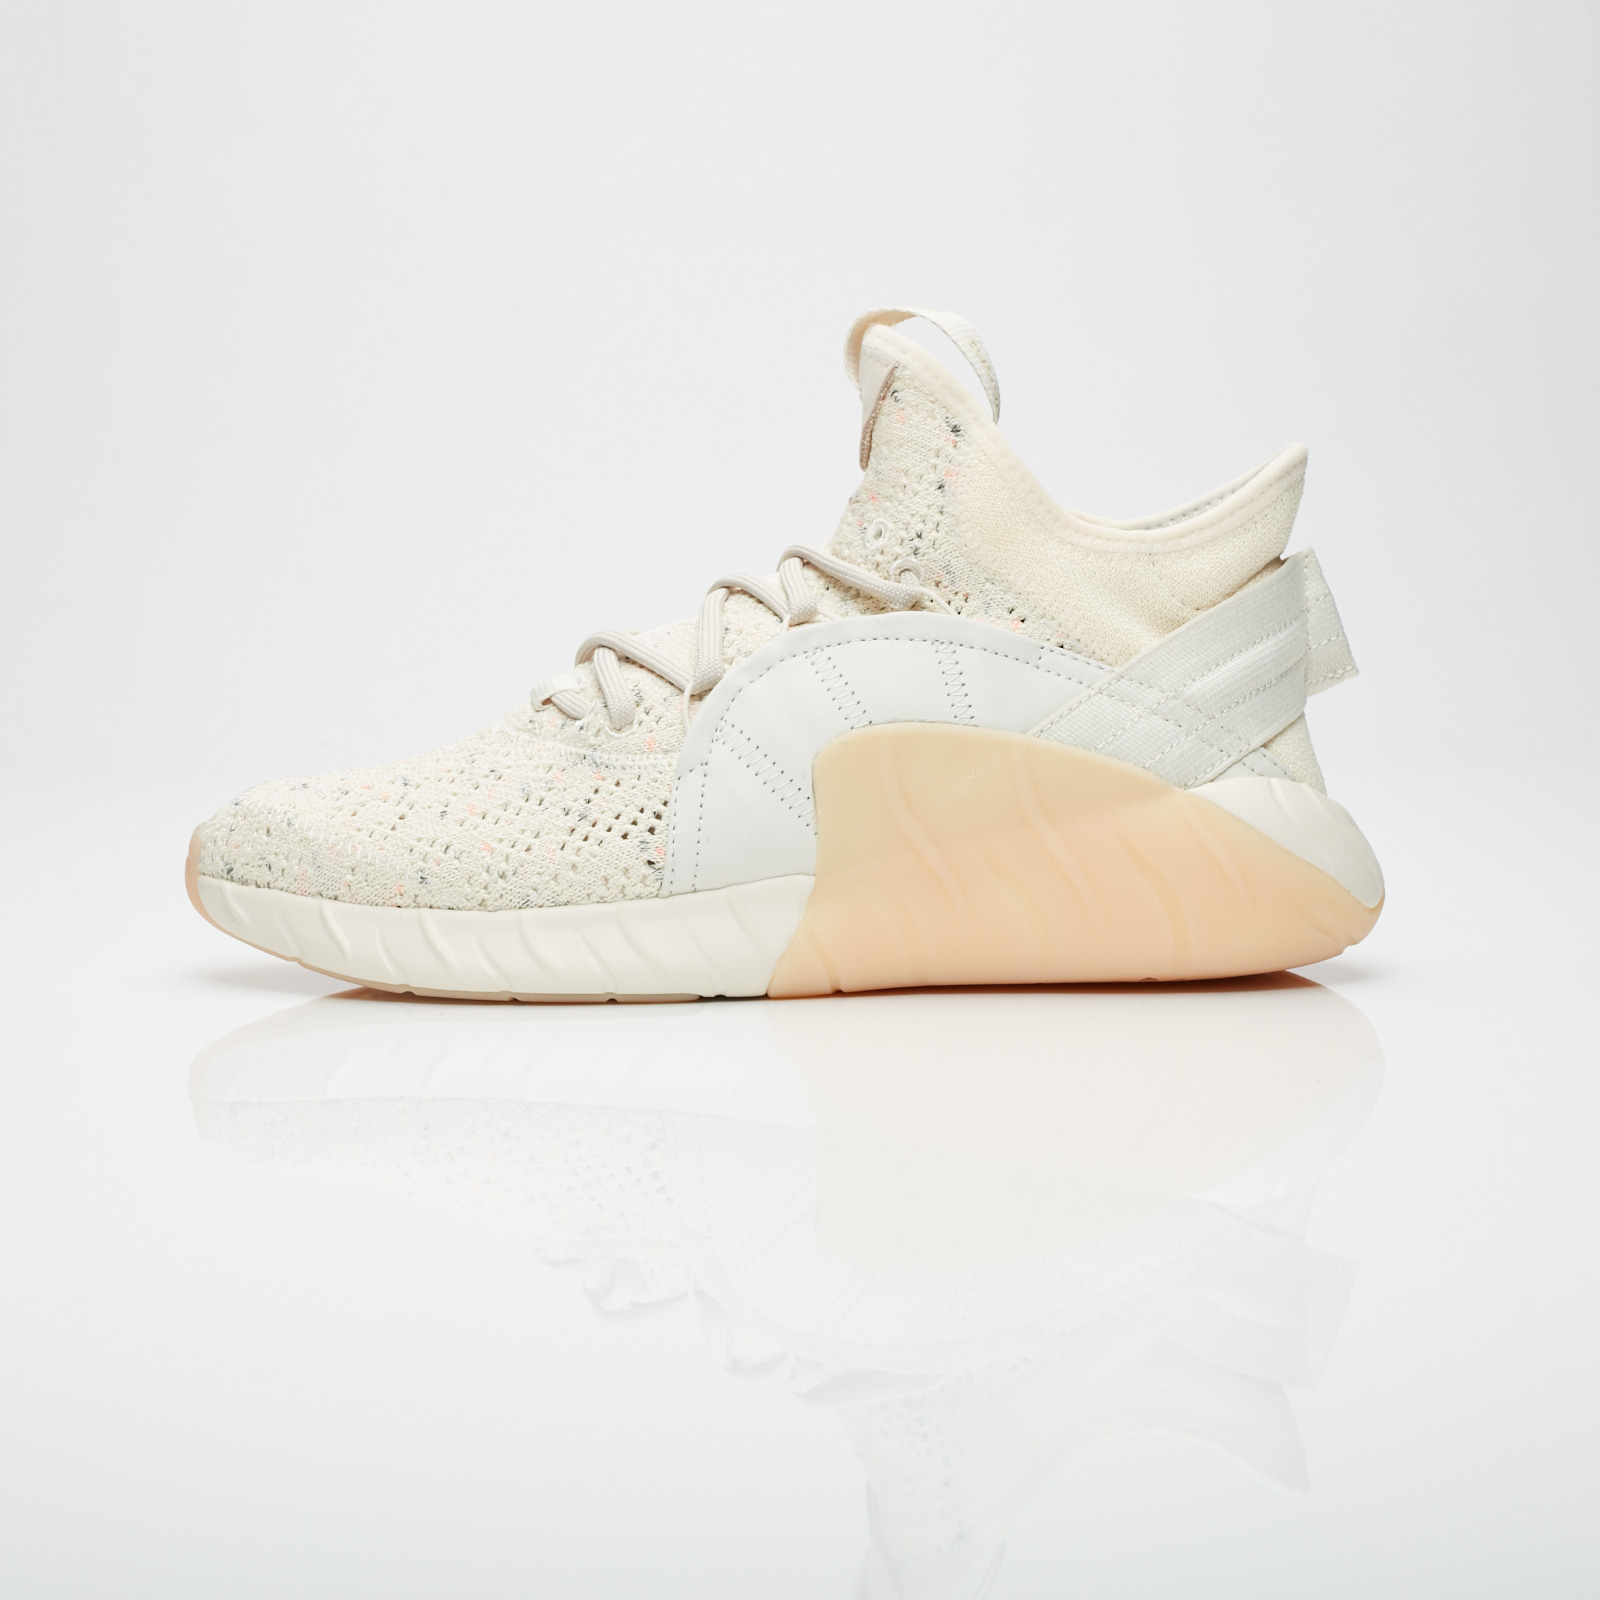 newest 24a73 7d97a adidas Tubular Rise - Cq1378 - Sneakersnstuff | sneakers ...